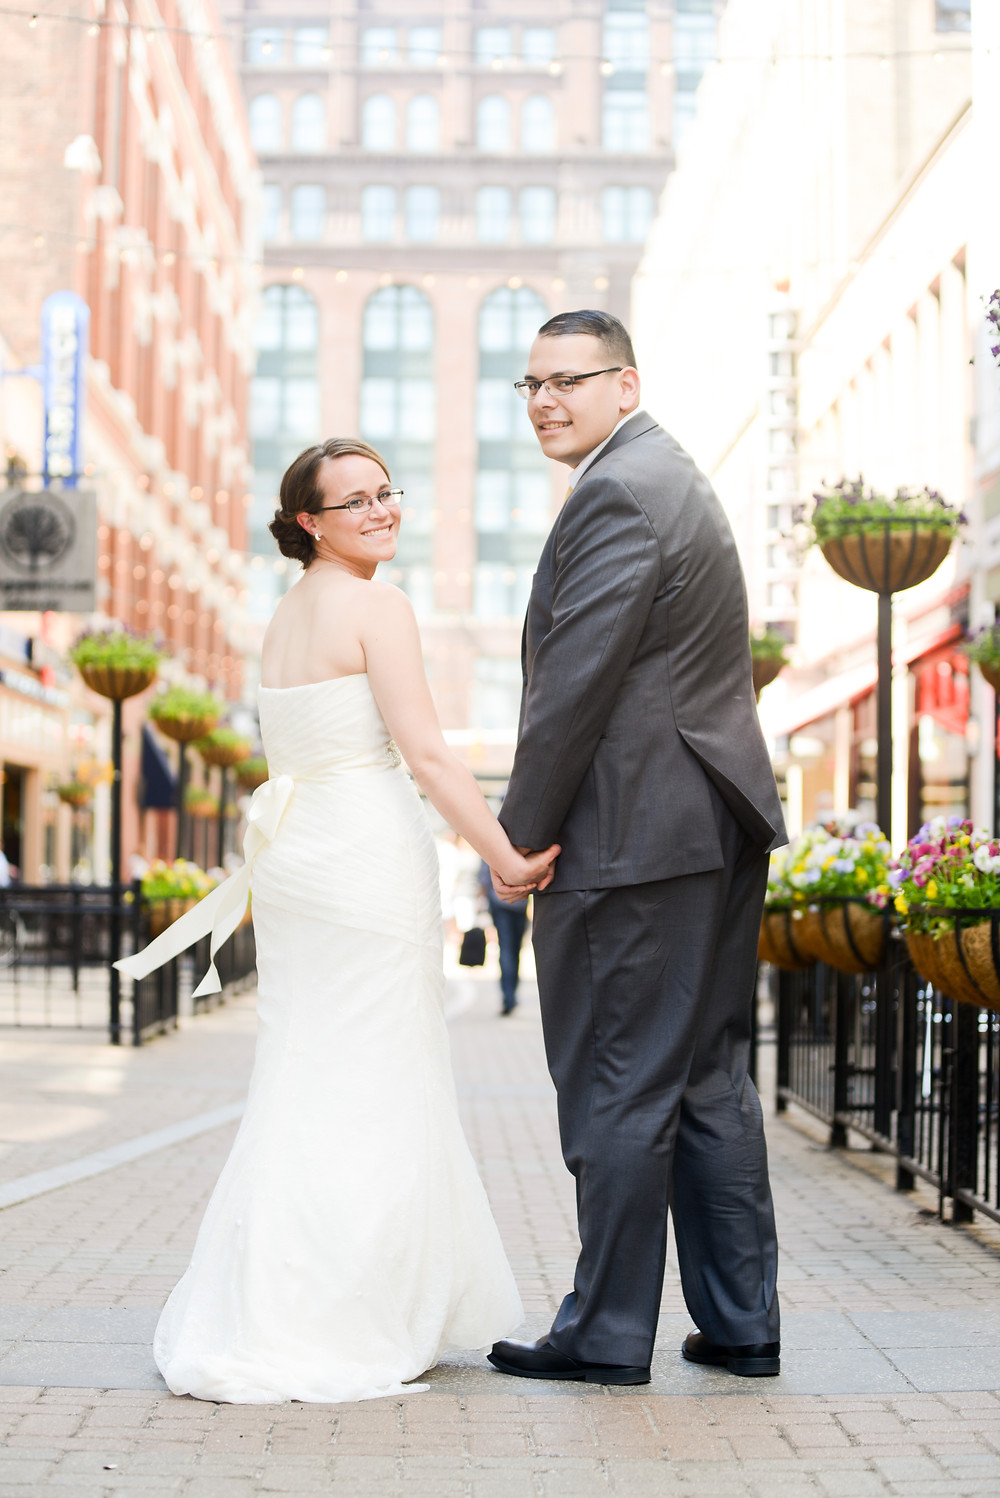 Bride and groom smiling on East 4th Street in Cleveland, Ohio